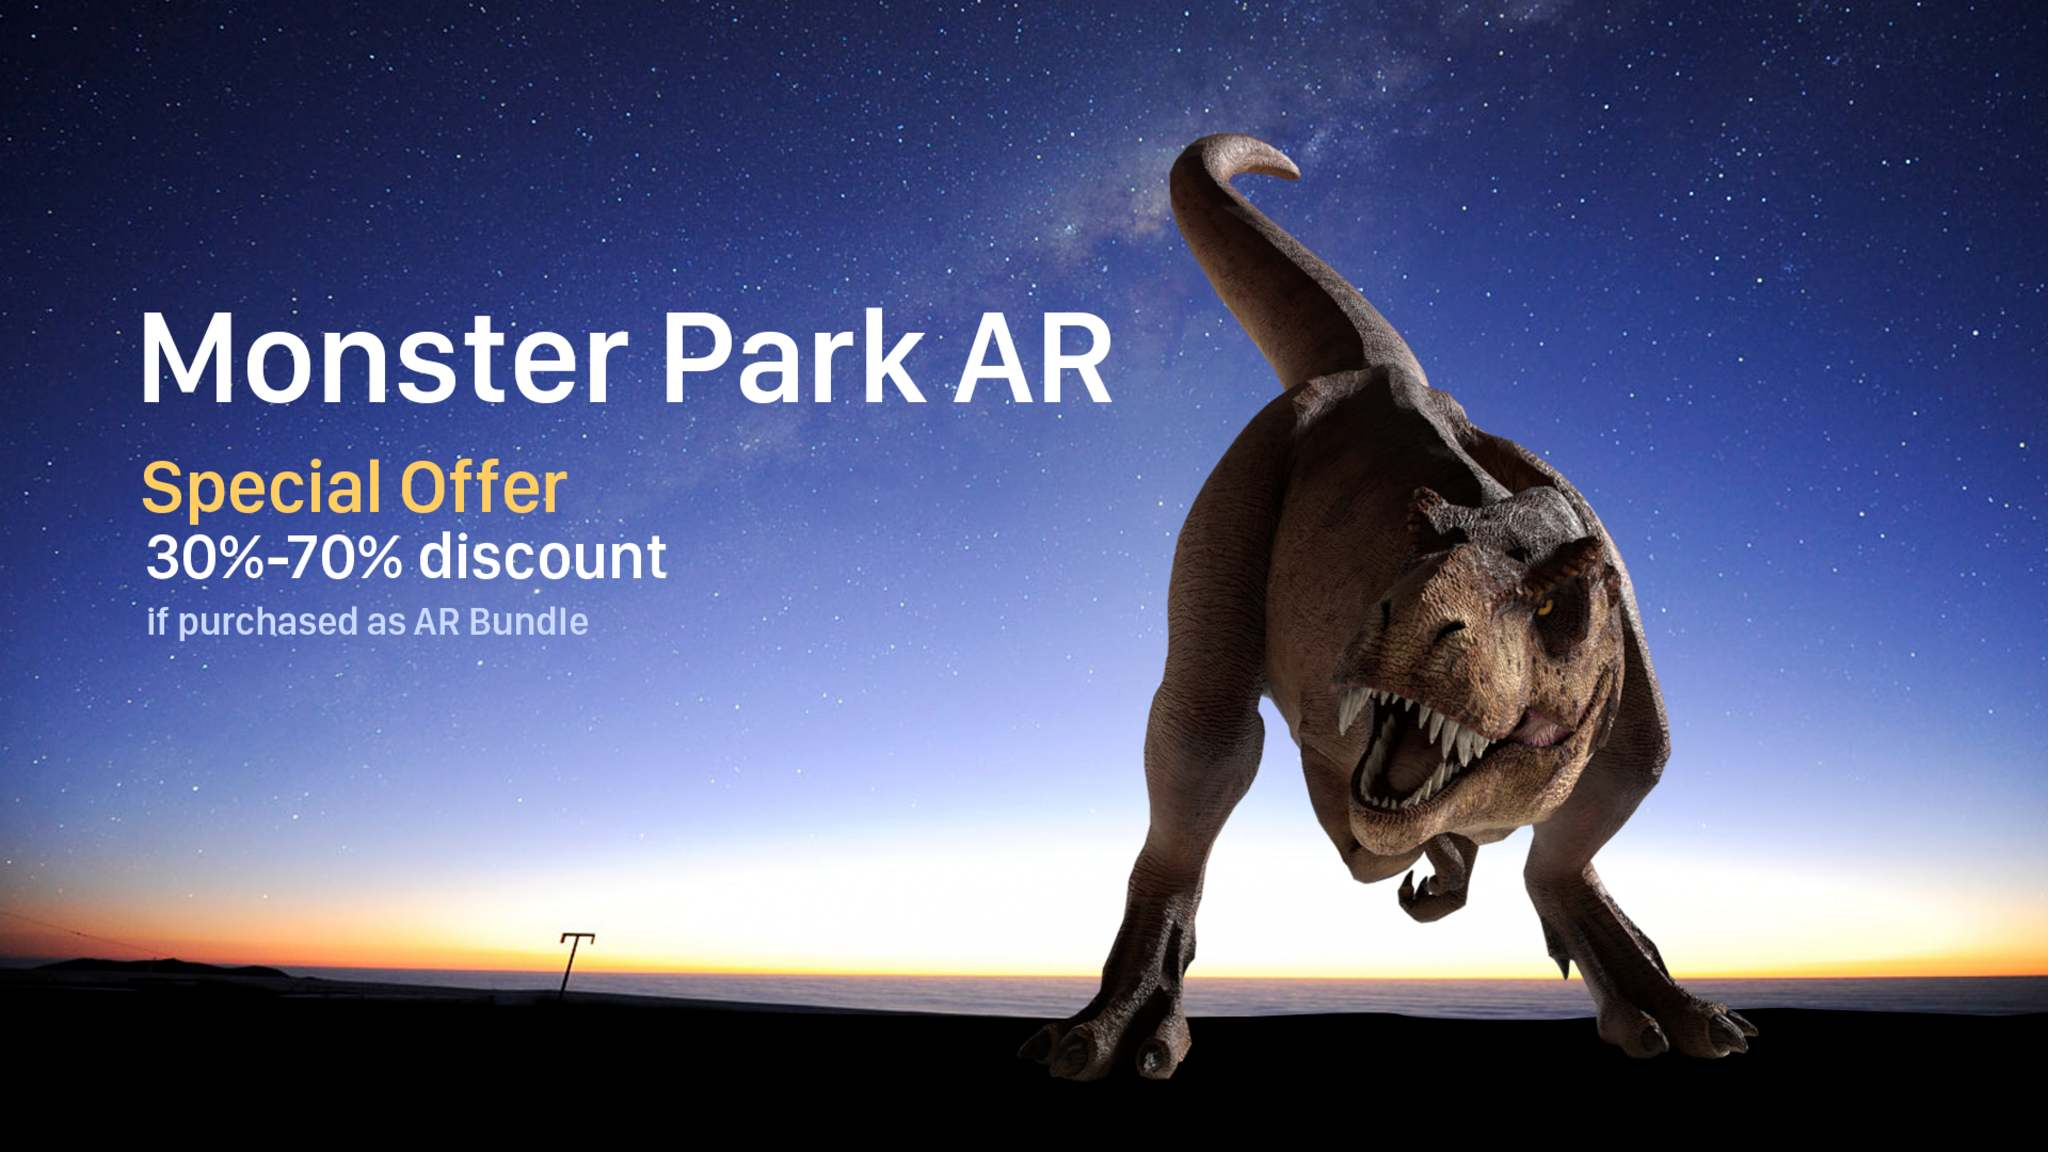 Monster Park AR - Special Offer